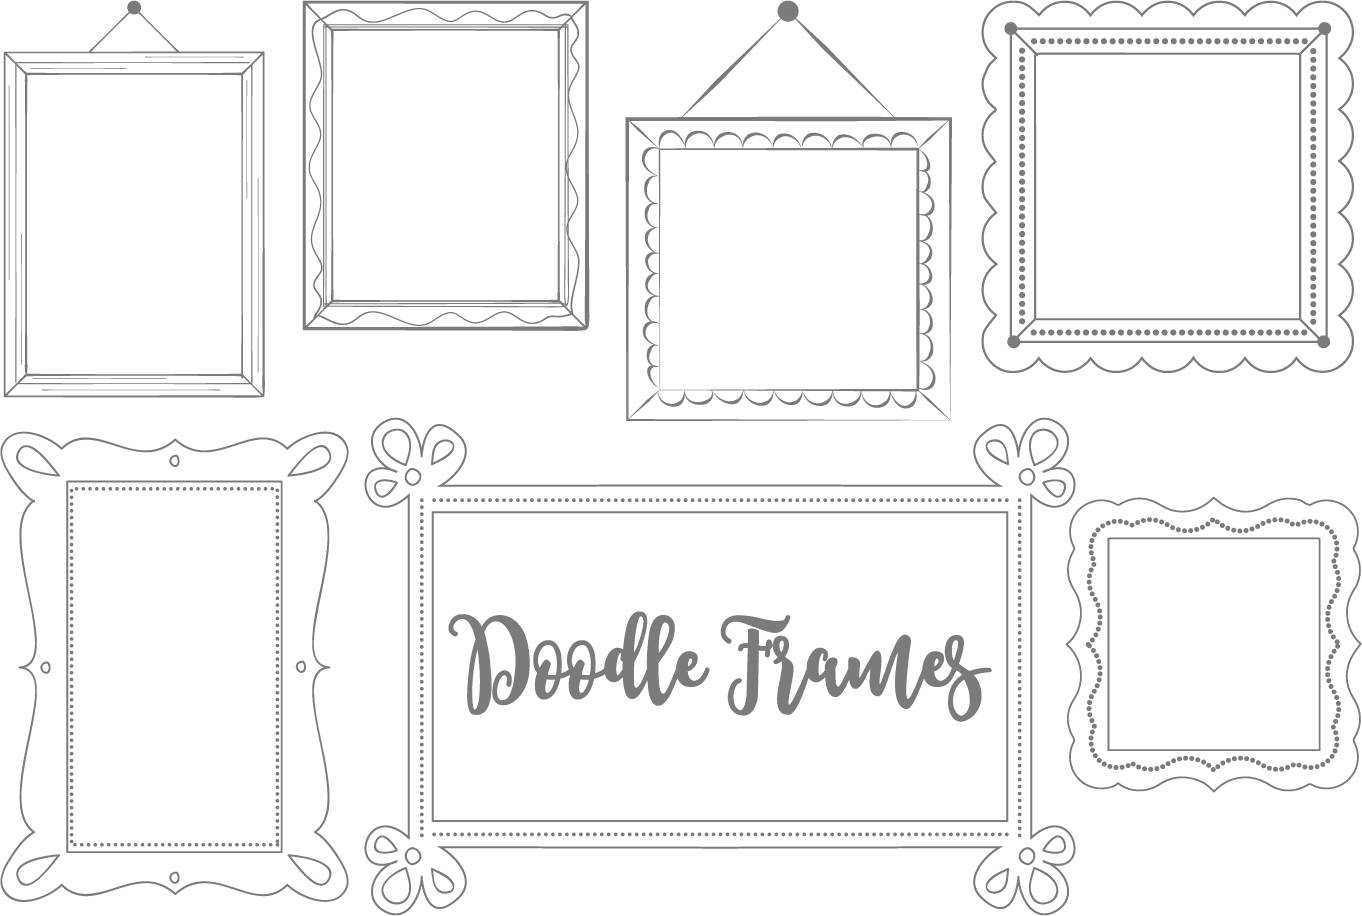 Download Free Doodle Frame Set Graphic By Sonyadehart Creative Fabrica for Cricut Explore, Silhouette and other cutting machines.